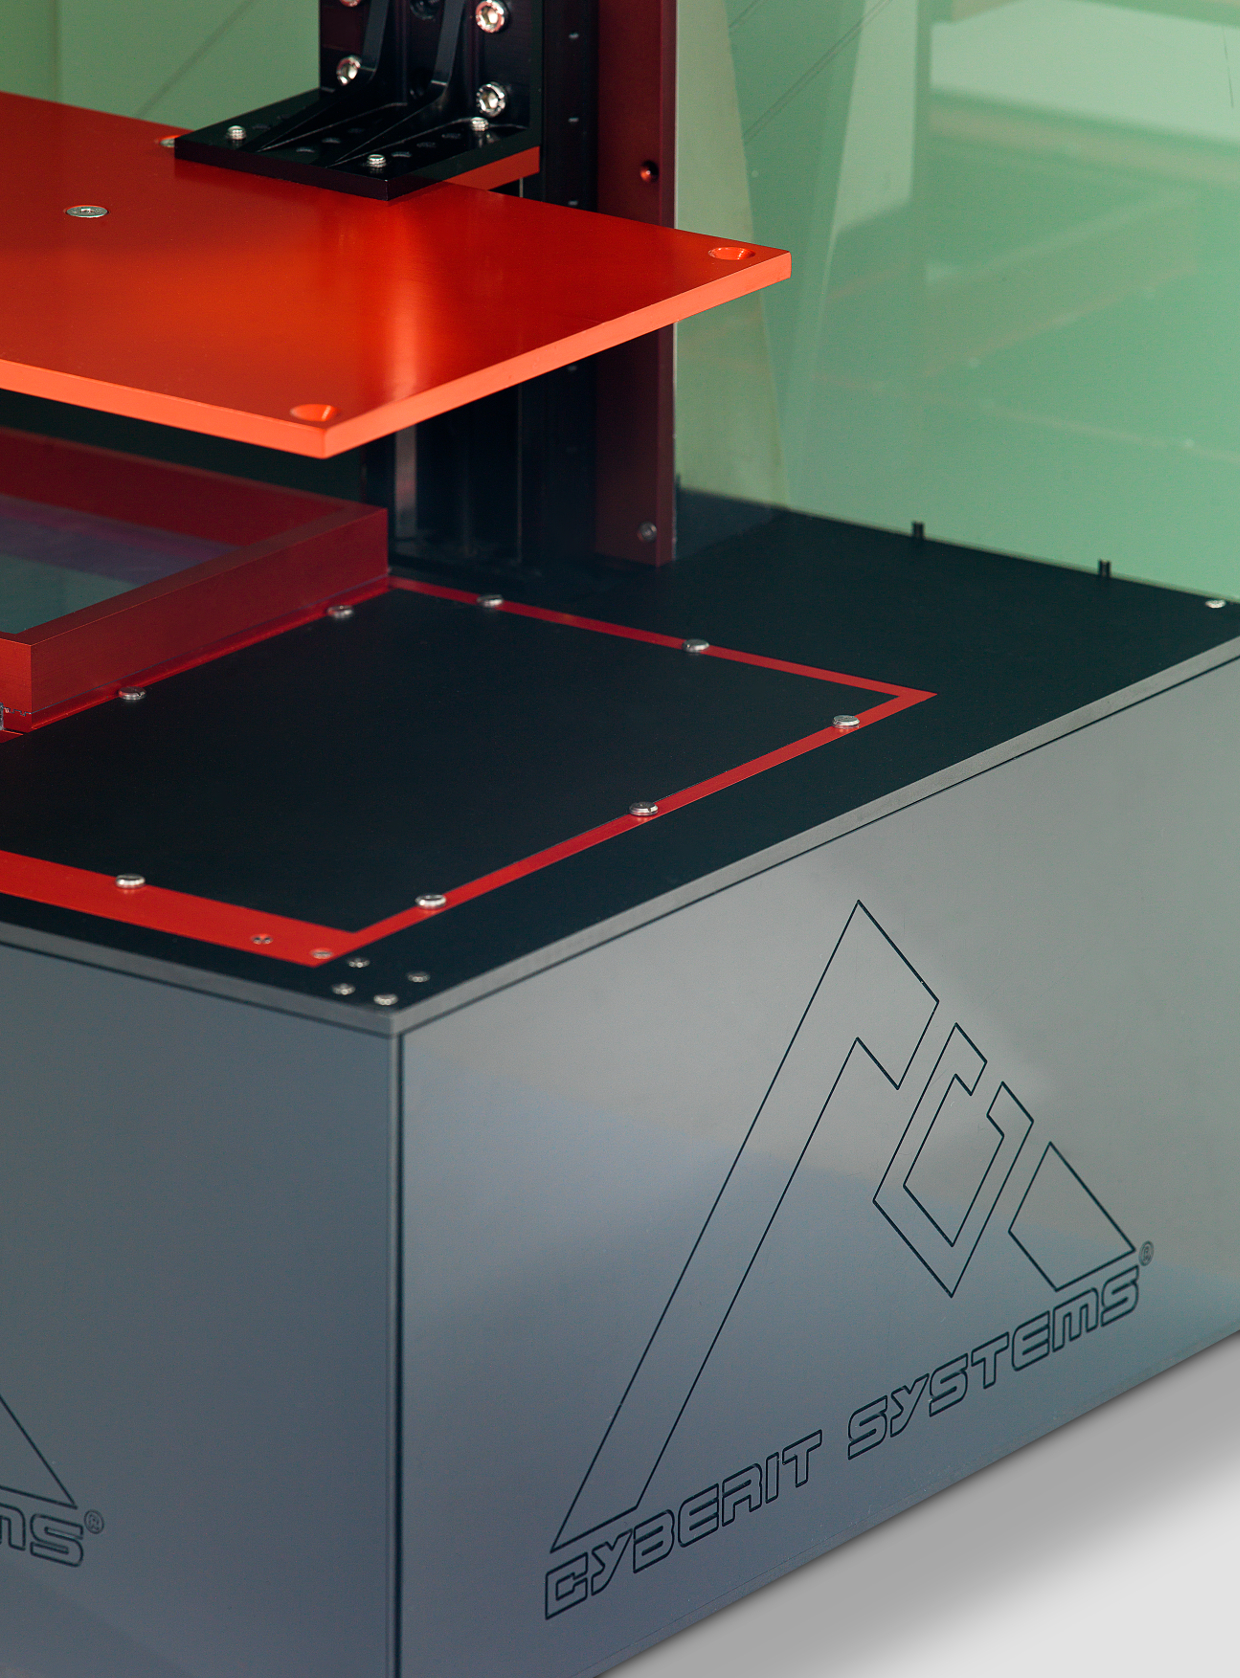 Another 3D printer from Cyberit Systems